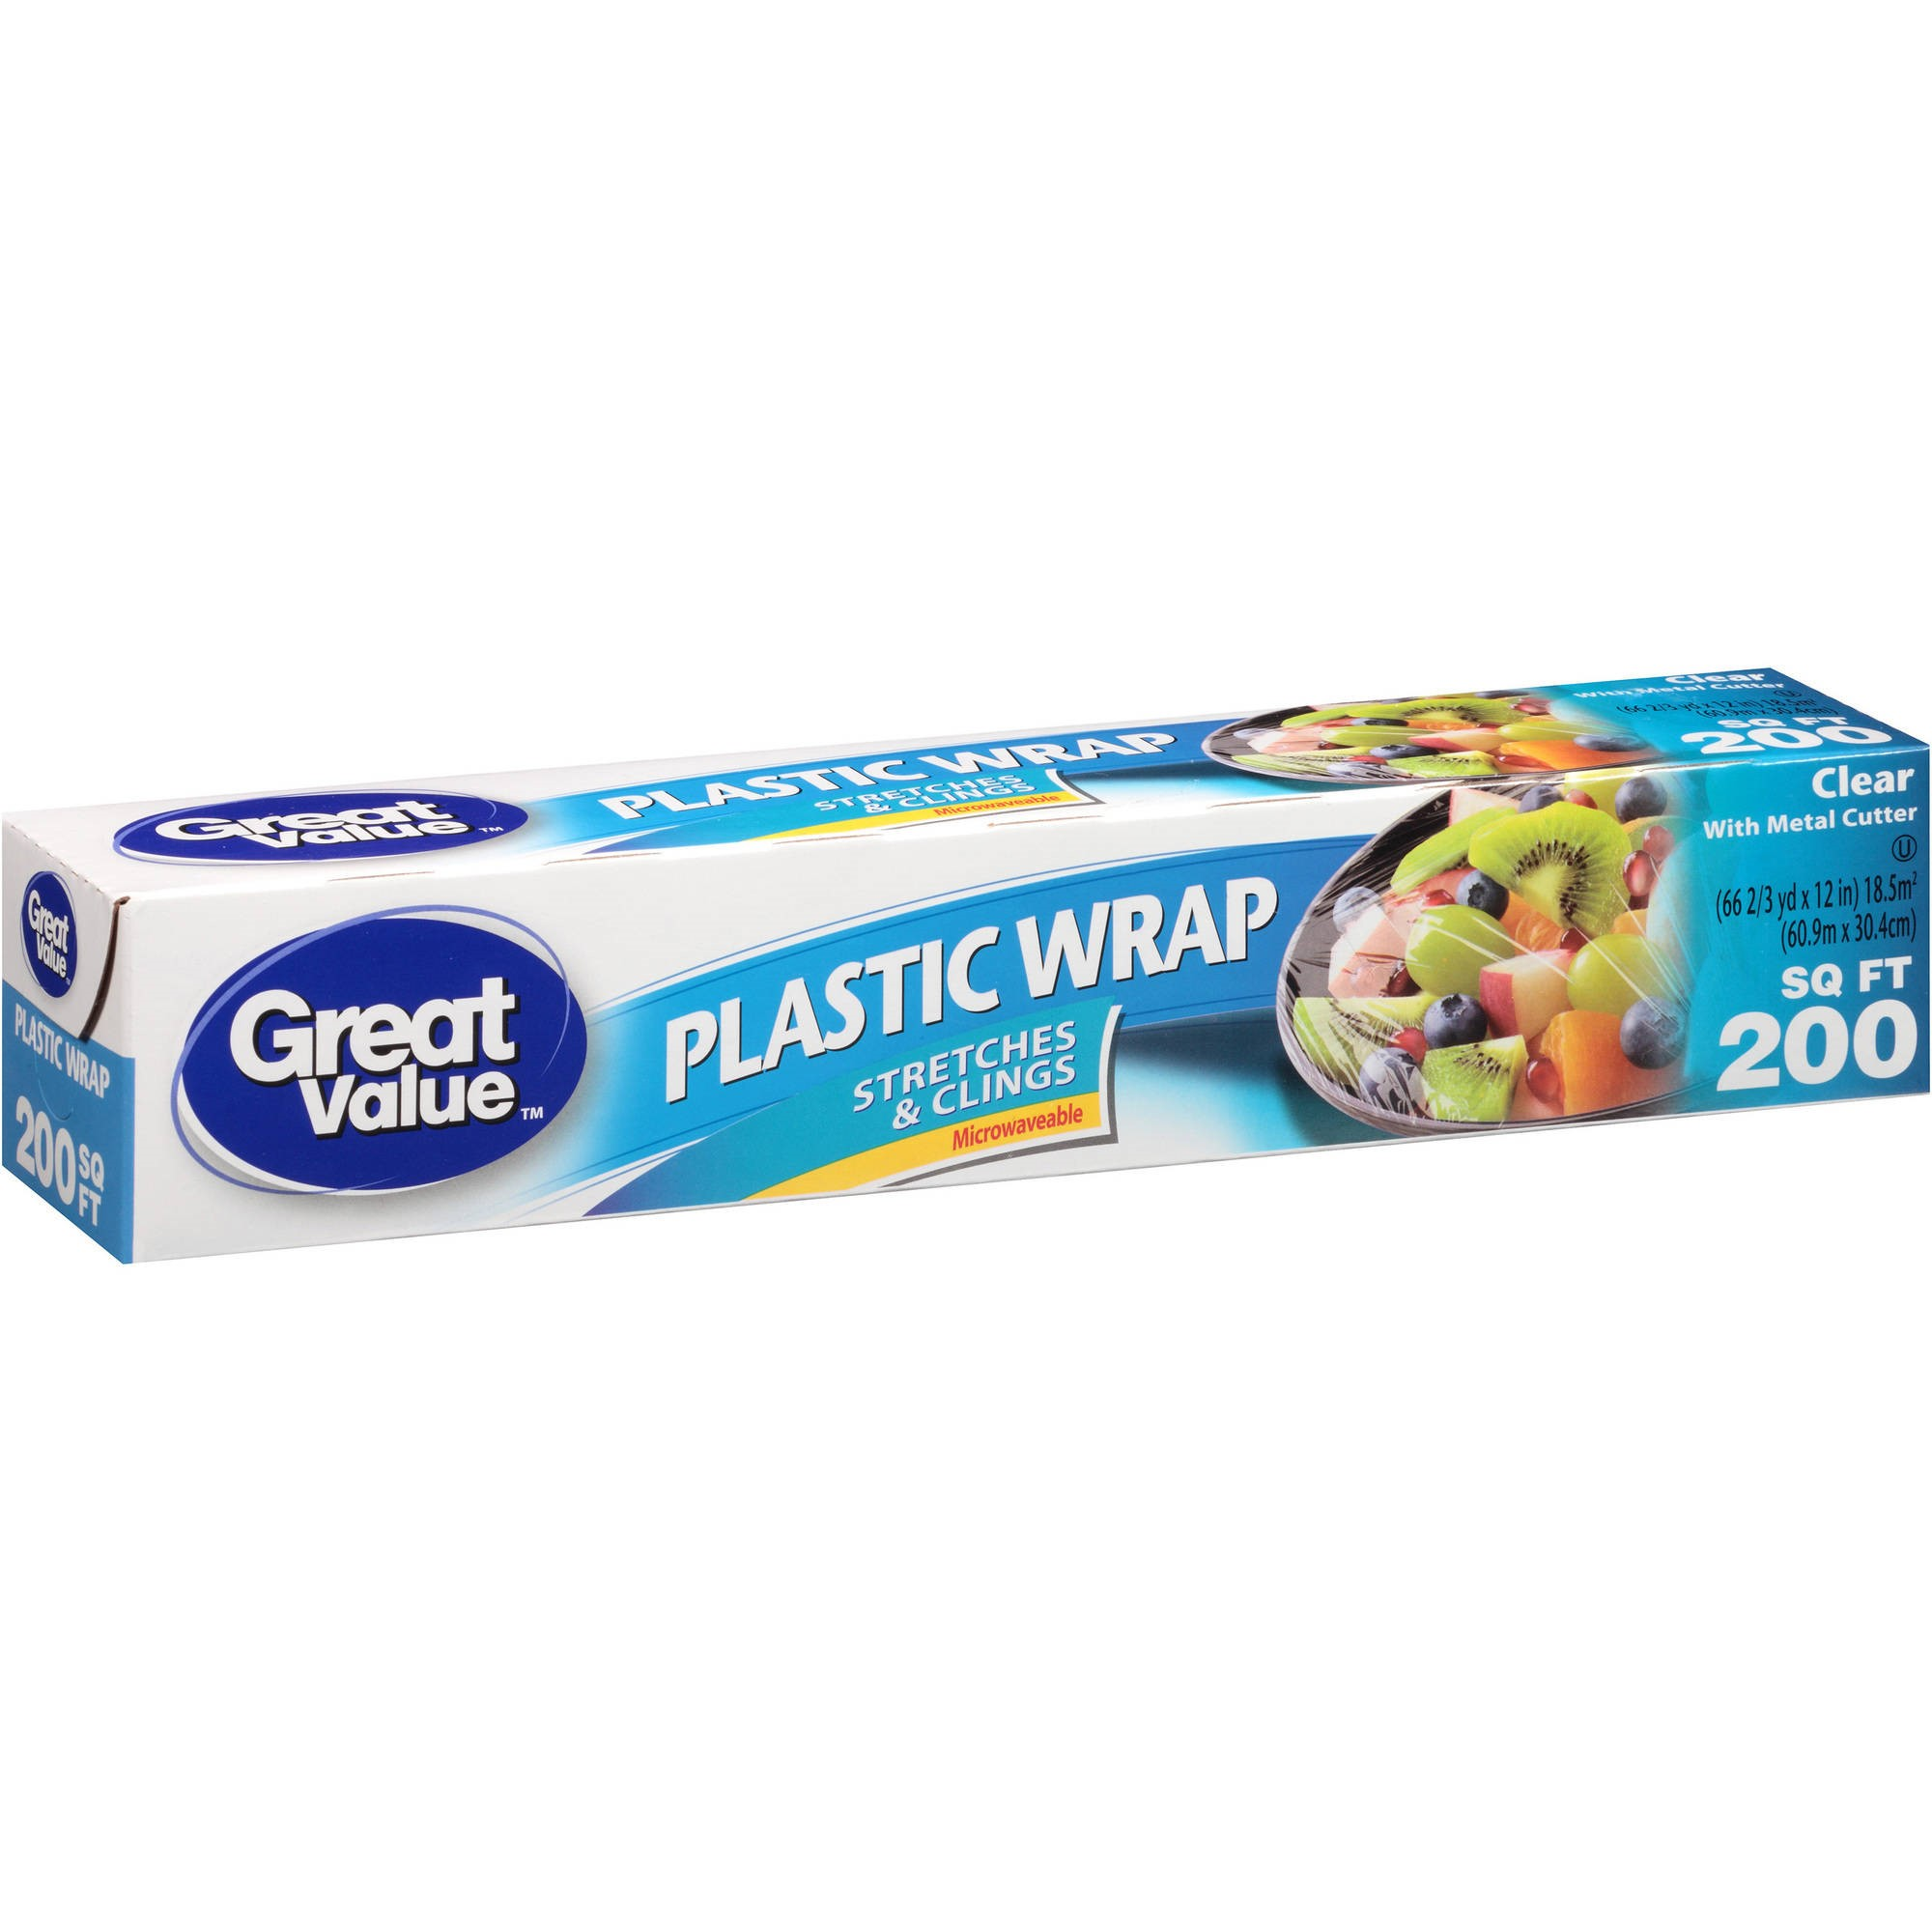 Great Value Plastic Wrap, Clear, 200 sq ft